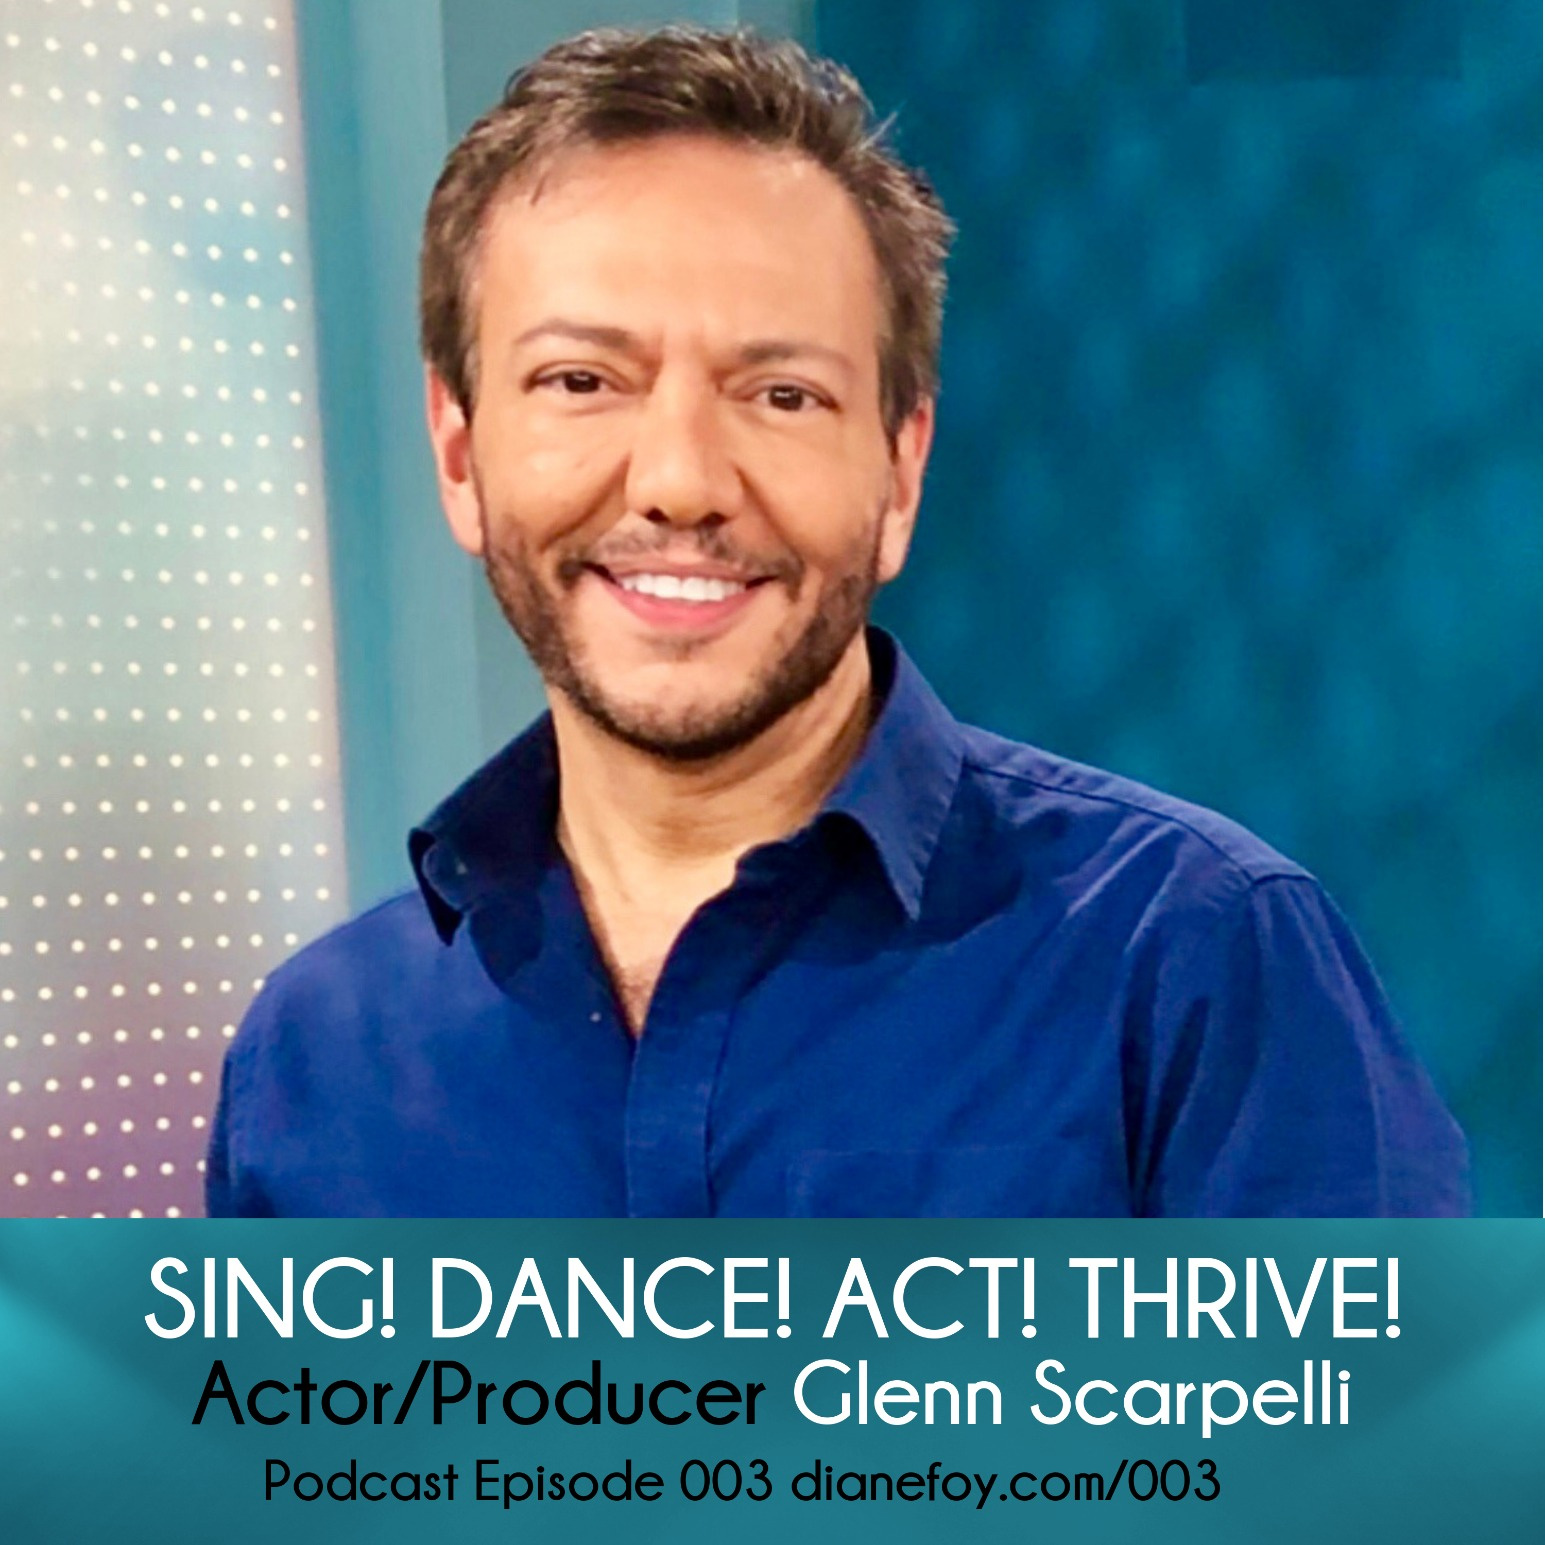 Glenn Scarpelli, Actor/Producer